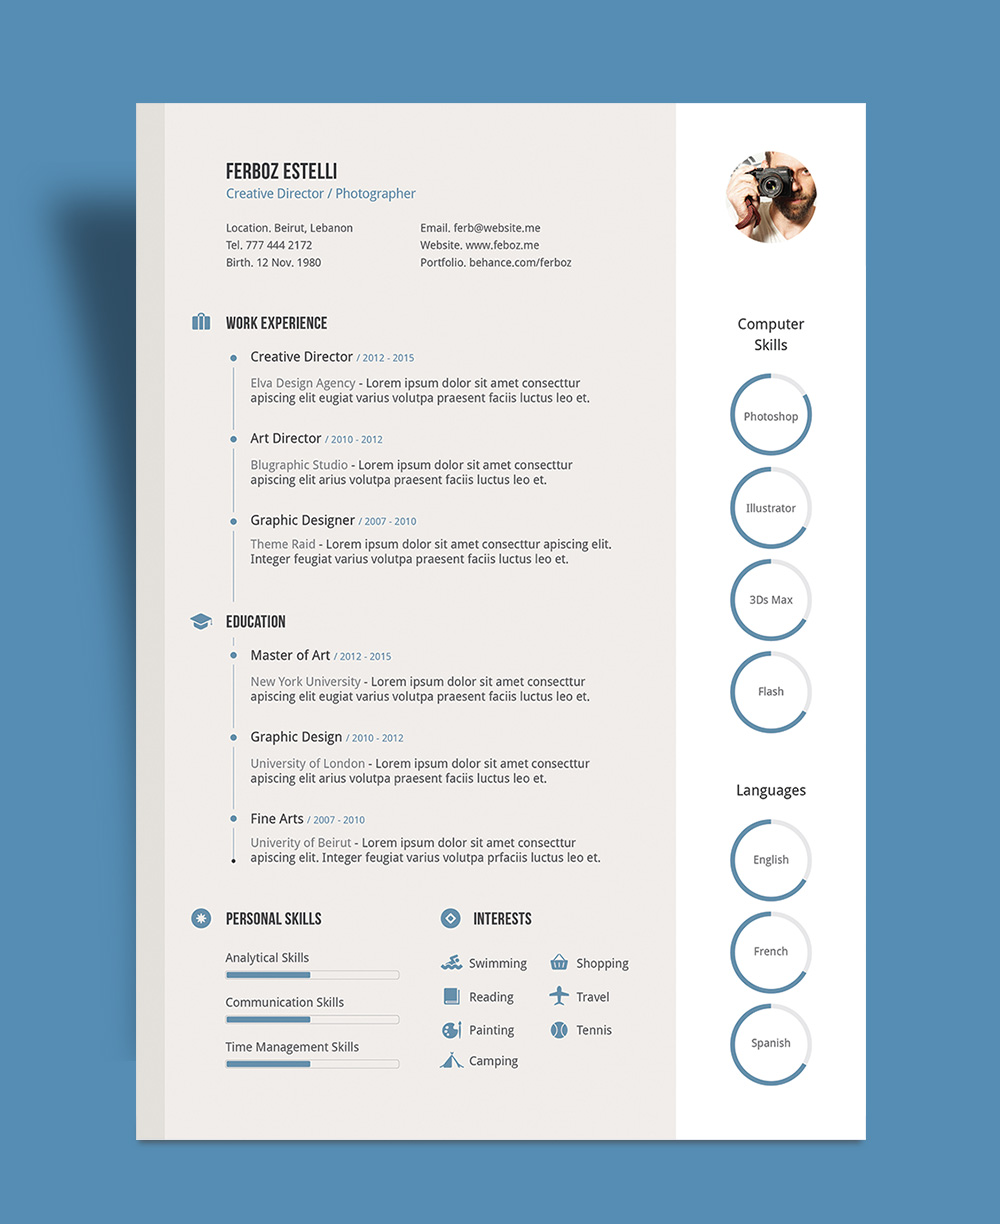 Free Professional Resume CV Template With Cover Letter  Portfolio in Ai For Graphic Designer